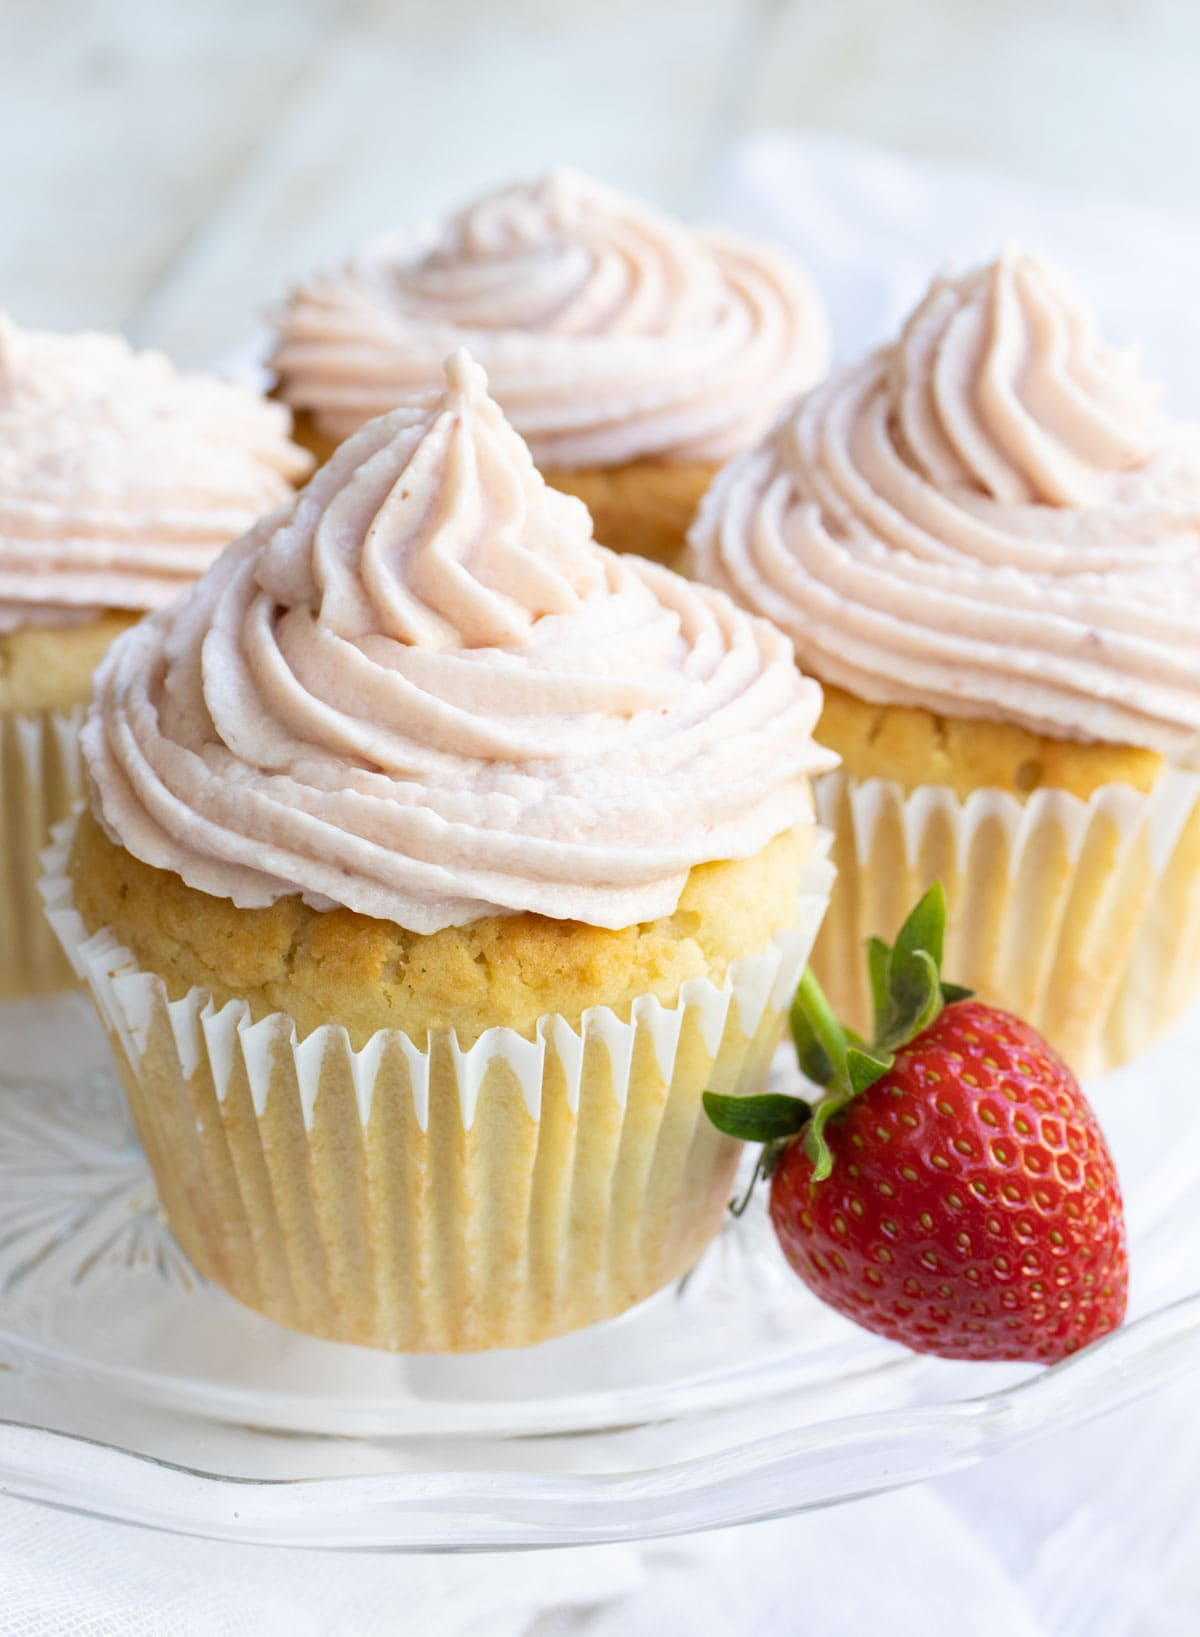 keto cupcakes with strawberry frosting and a strawberry on the side